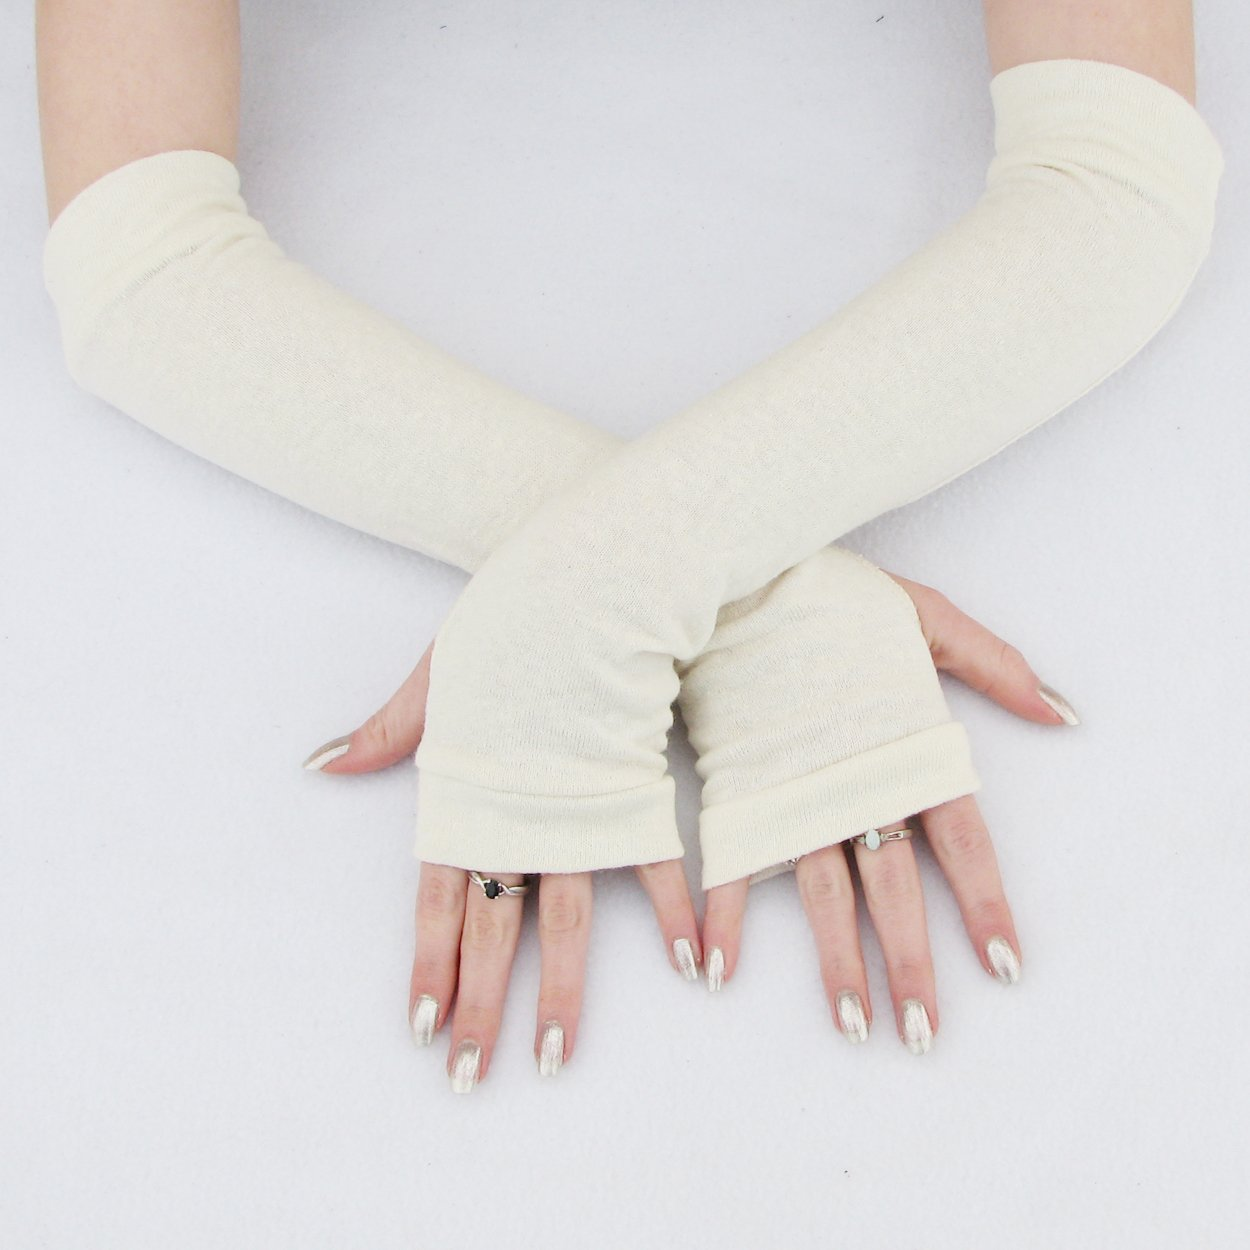 Fresno Mall Basic Ivory White Arm Quantity limited Eco-Friendly Bamboo Gloves Warmers